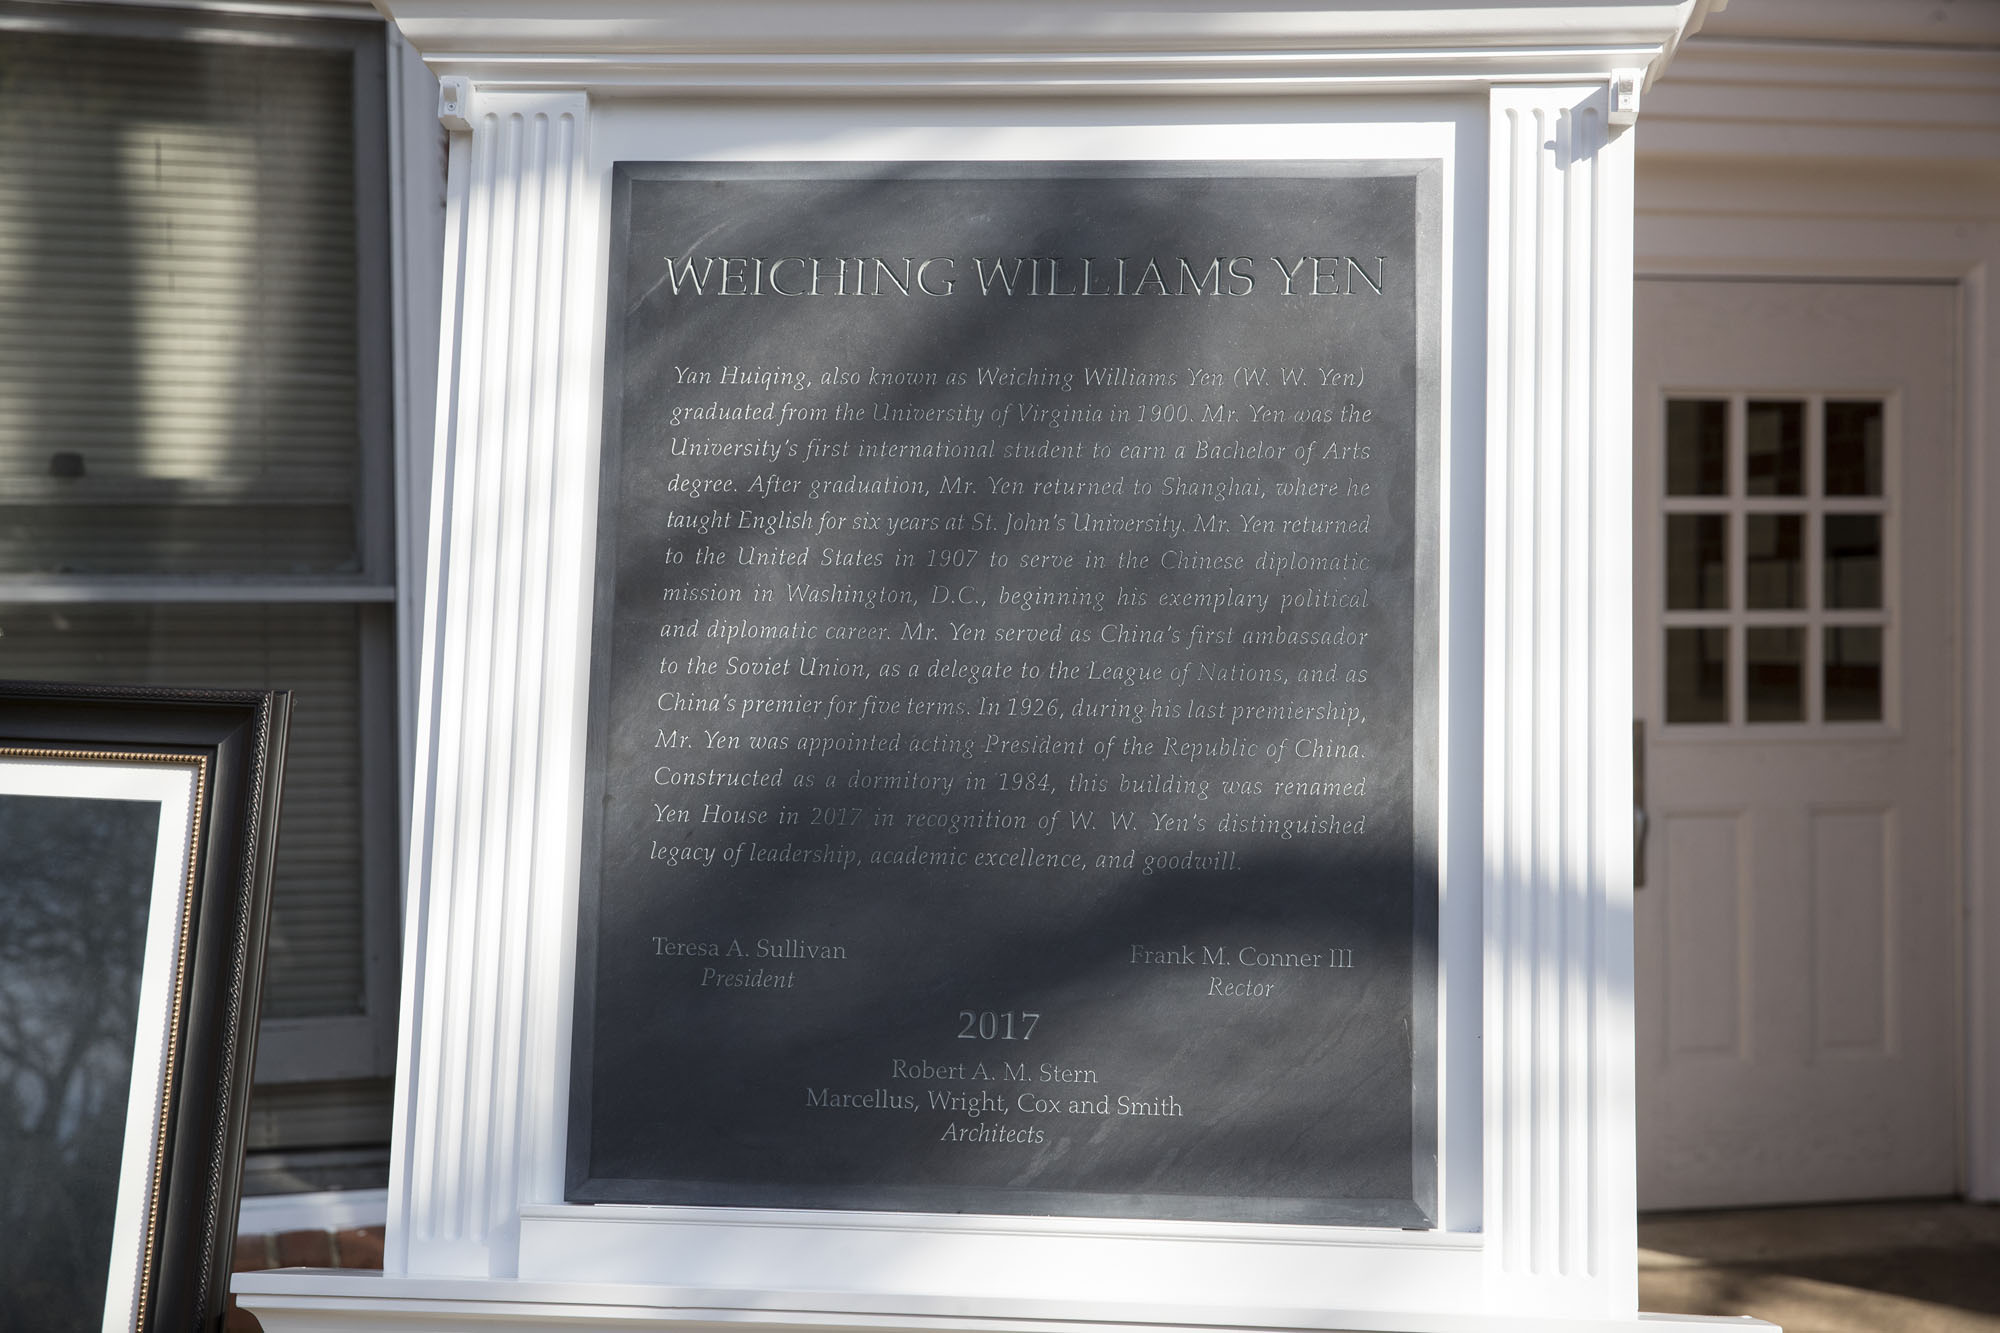 The plaque is inscribed with the history of W. W. Yen. (Photo by Dan Addison, University Communications)